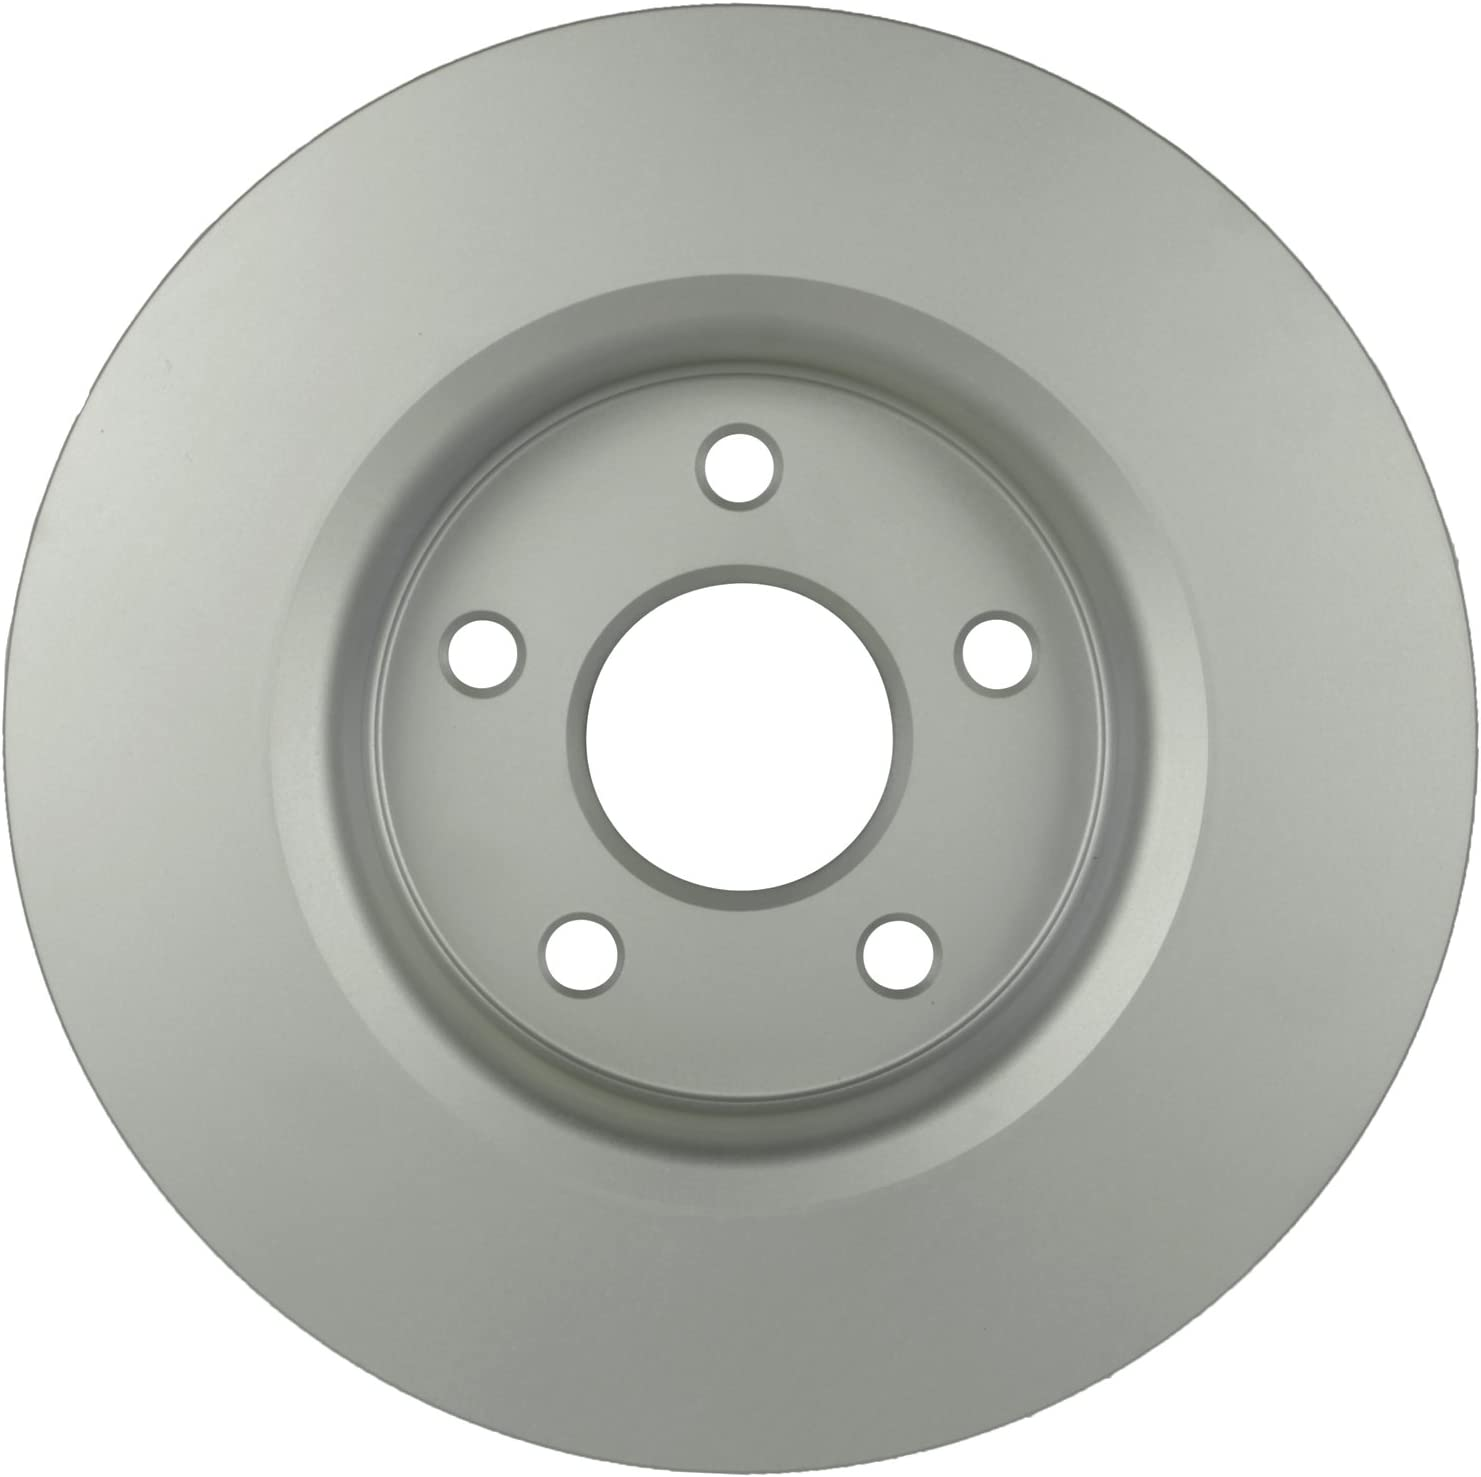 FOR JEEP GRAND CHEROKEE COMMANDER REAR PREMIUM BRAKE DISC DISCS PADS SET